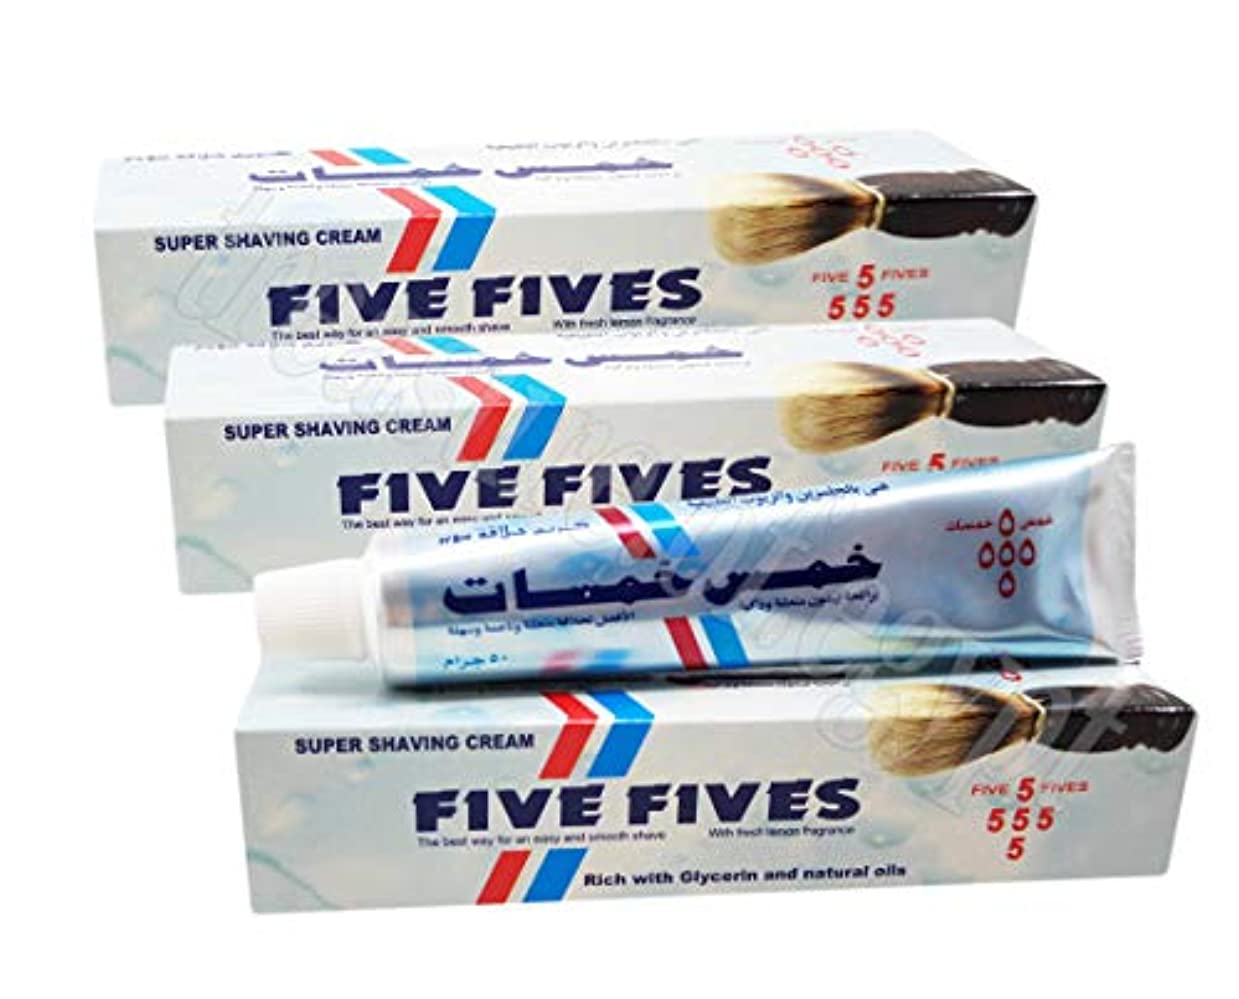 文言アラビア語アーサーコナンドイルFive Fives Super Shaving Cream Men Smoothing Toiletries Lather Shave Skin with Menthol & Glycerin & Coconut Oil...